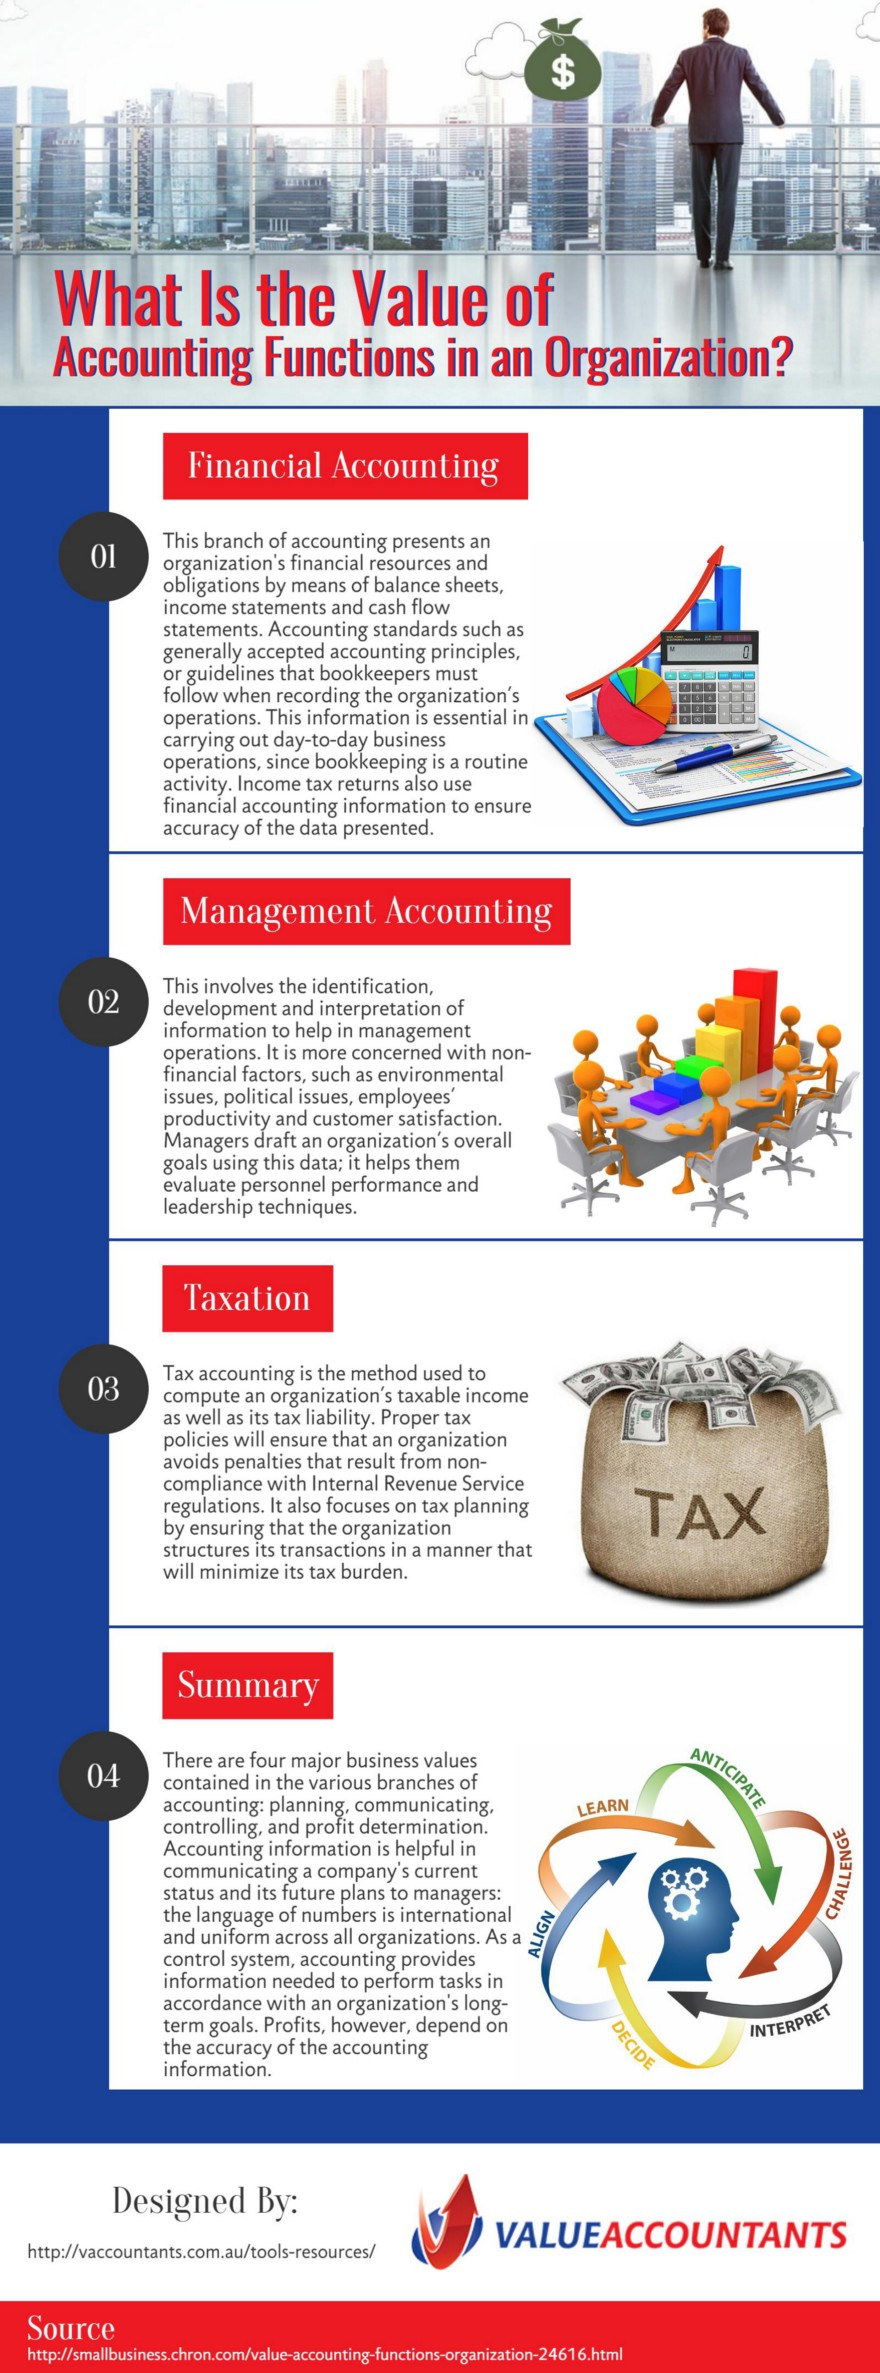 the role of an accountant in an organization The management accounting practices the role of management accountant in an organization and management accounting should move from administrative level to the srtrategic ones, from bean counters.